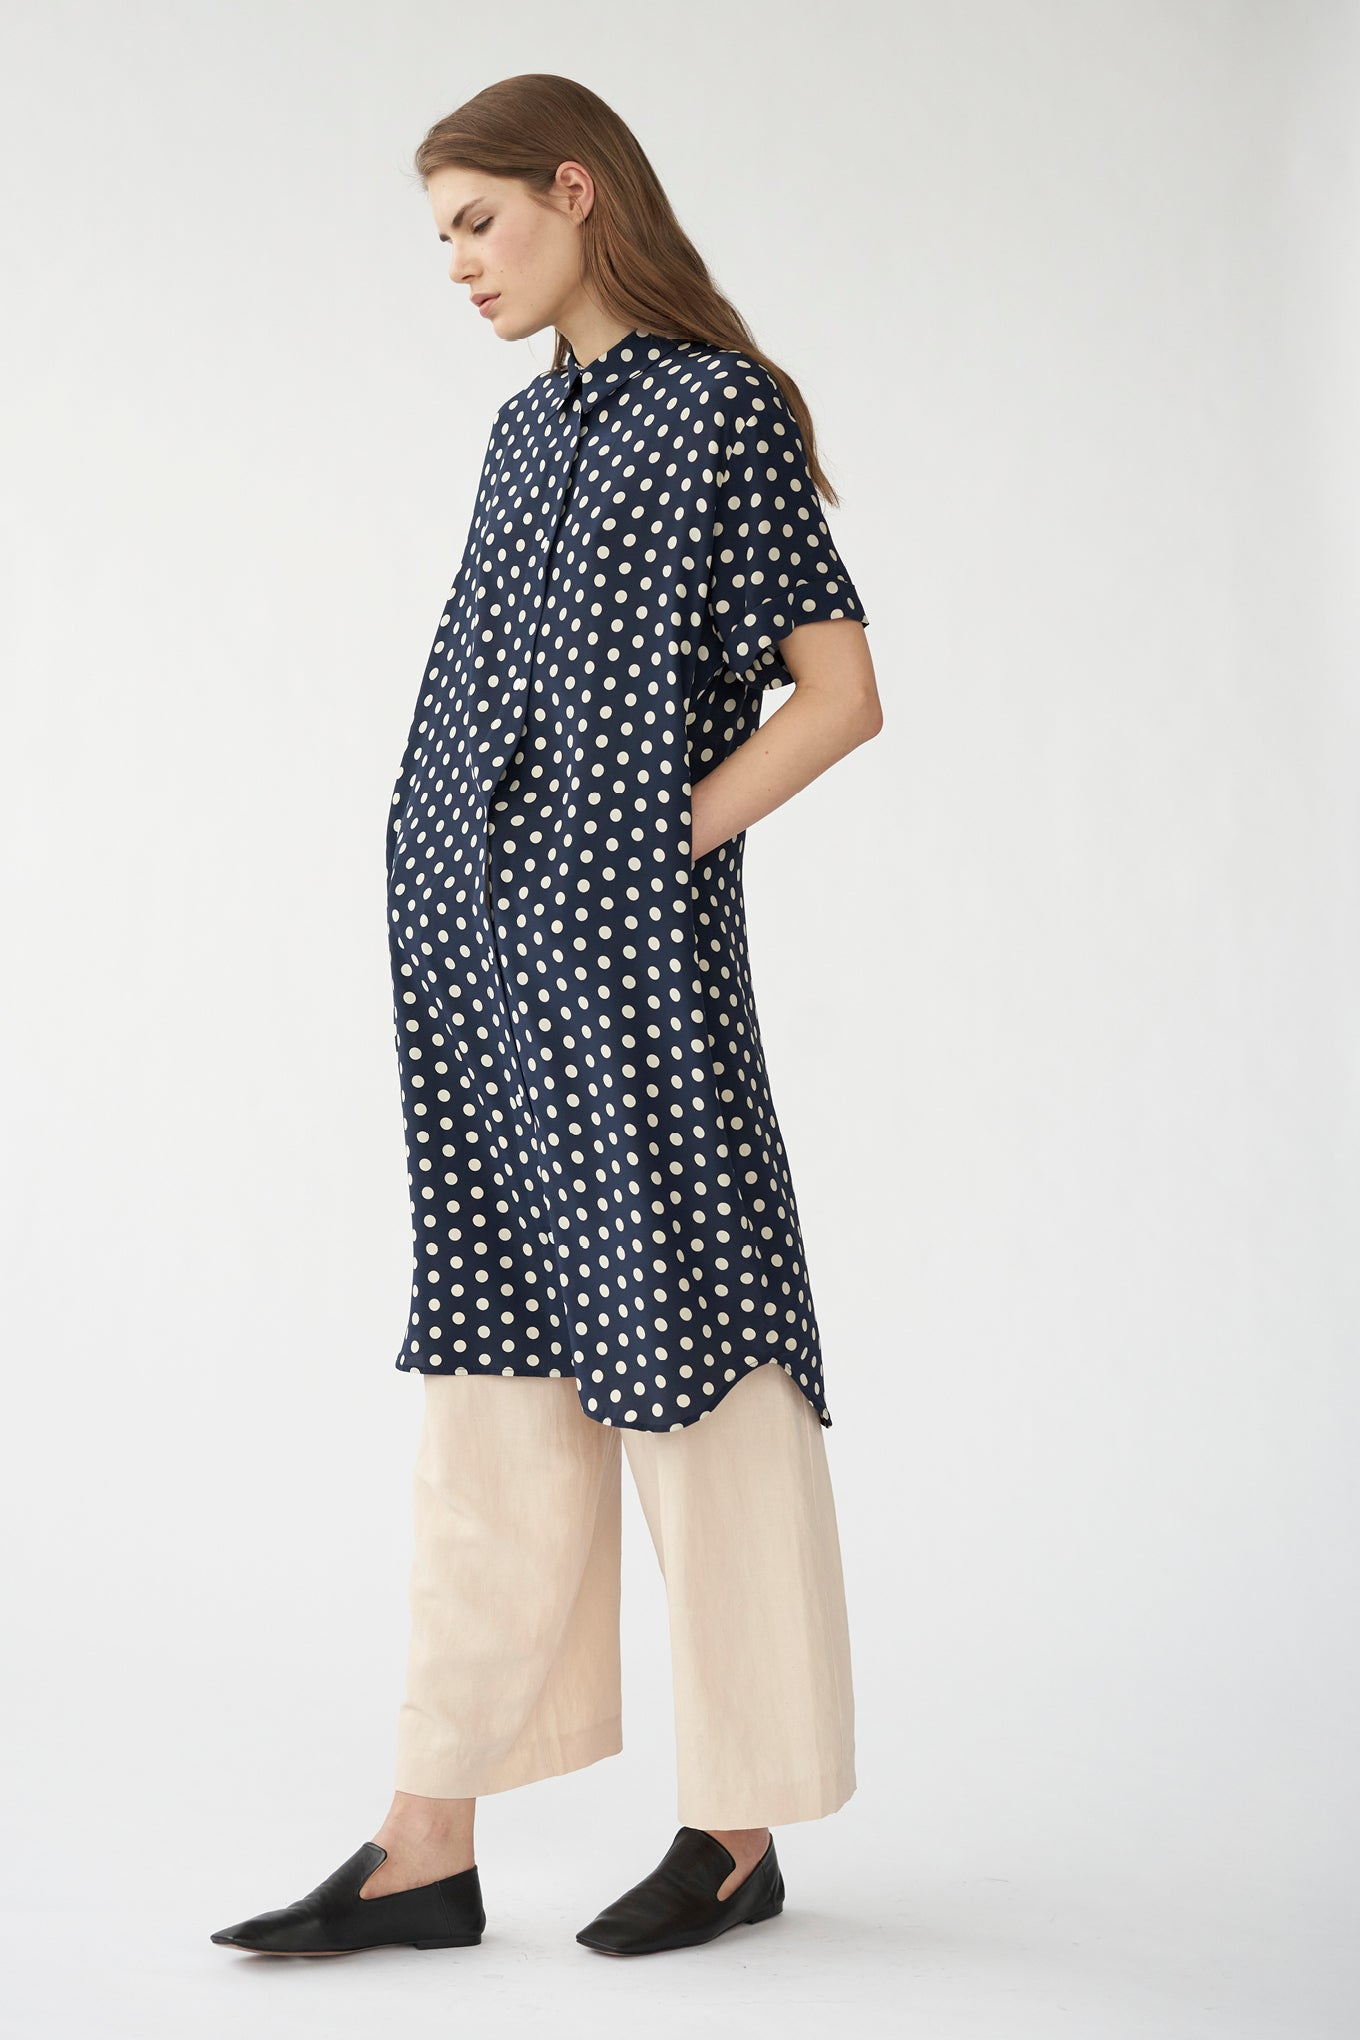 ELIZA SHIRT DRESS - NAVY/WHITE DOT - CREPE DE CHINE SILK